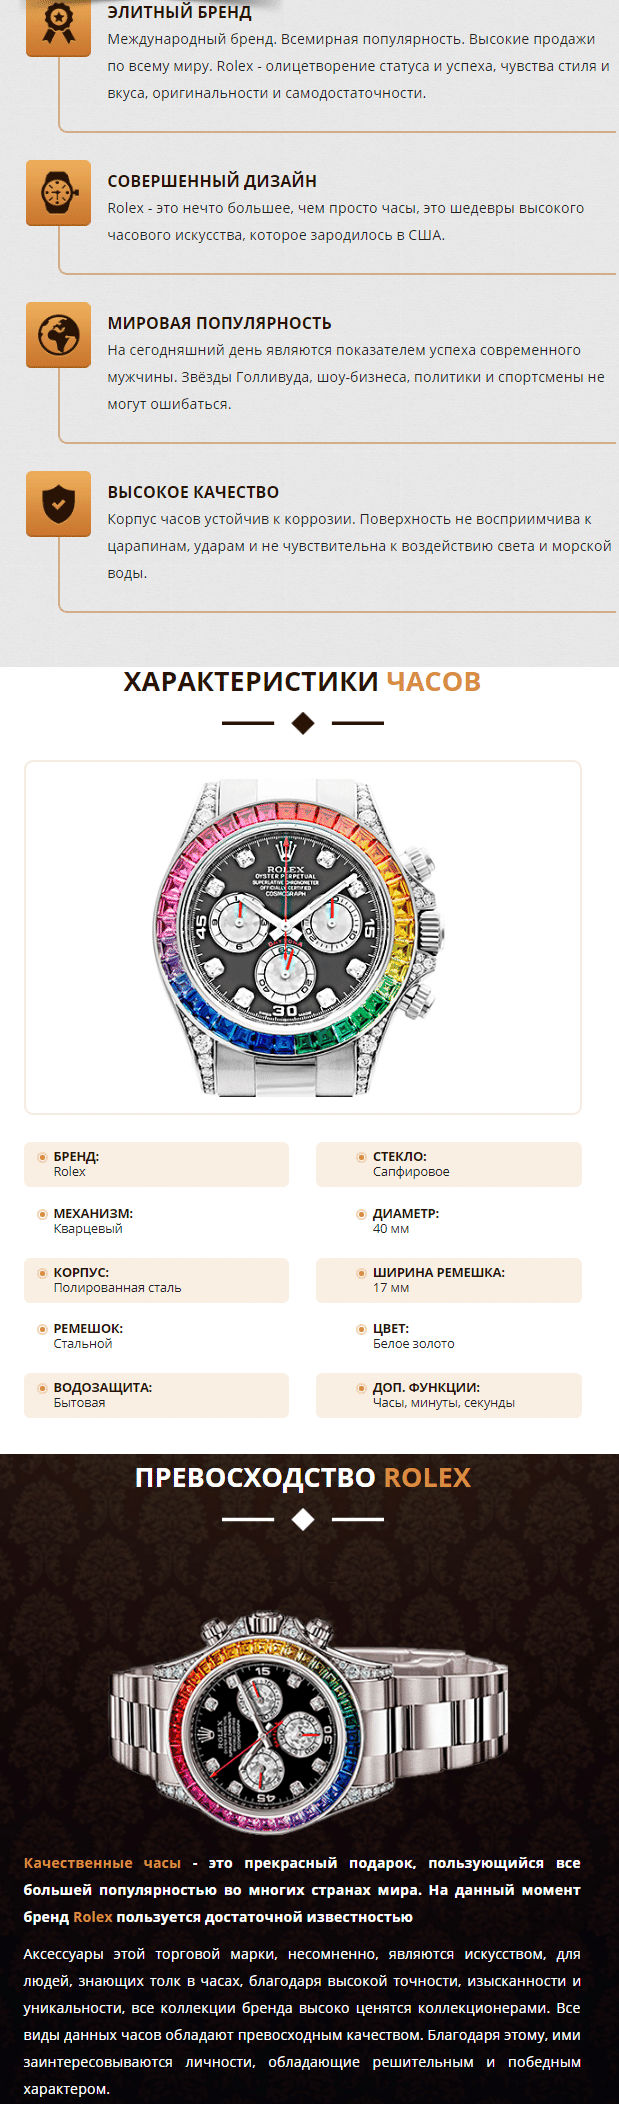 Часы Rolex White Gold Daytona Rainbow купить